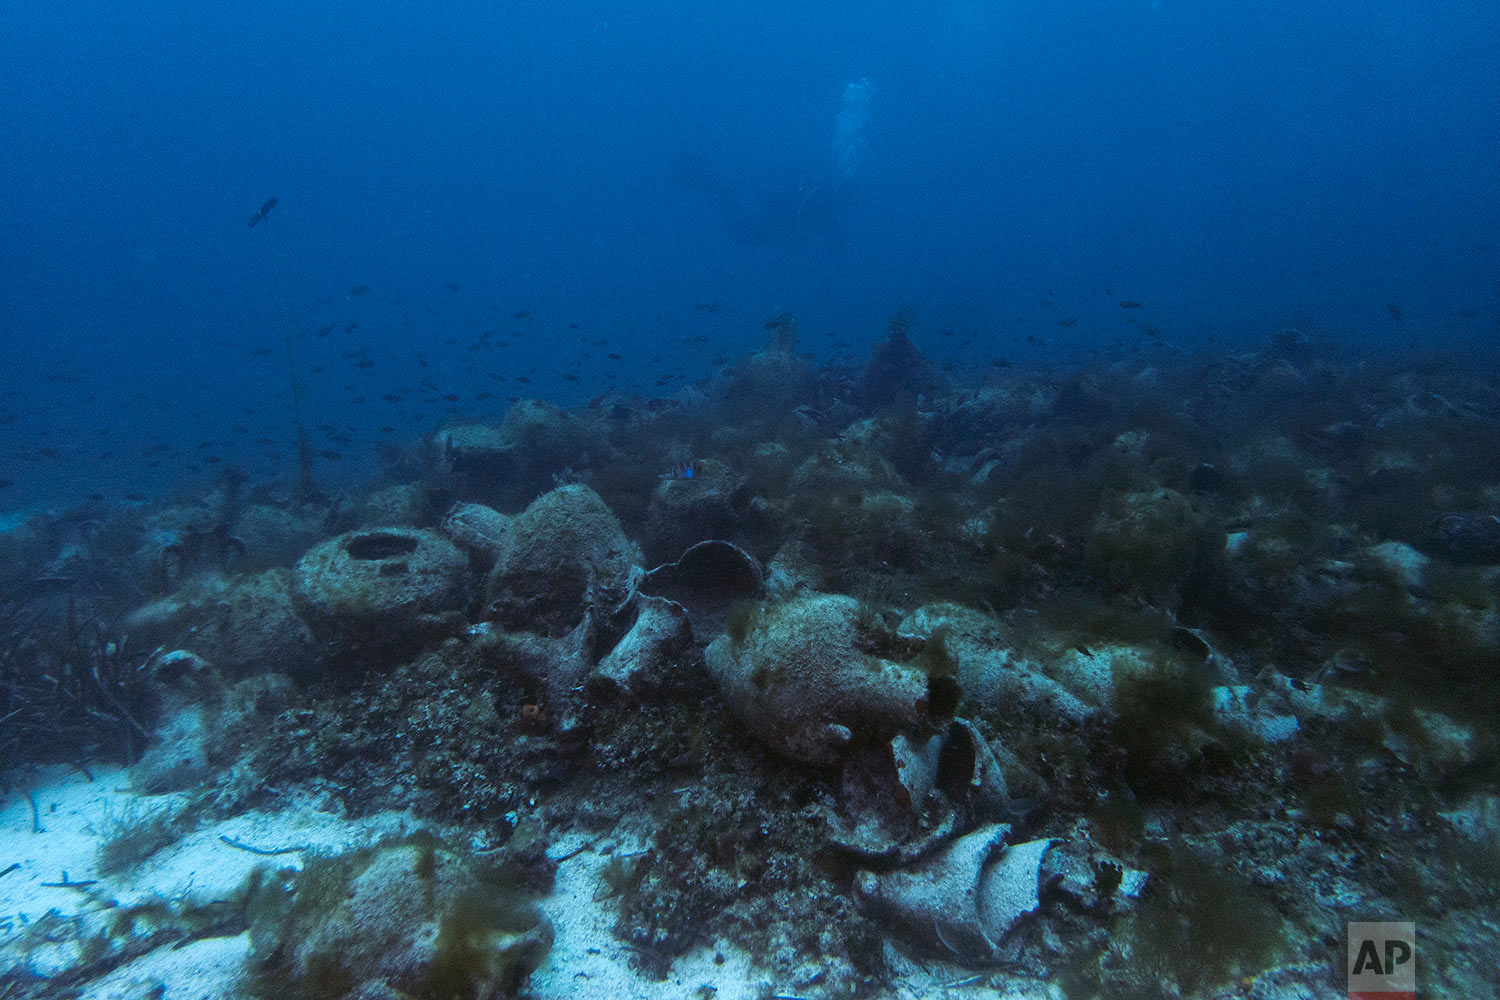 Ancient amphoras lie at the bottom of the sea near the coast of Peristera, April 7, 2019. (AP Photo/Elena Becatoros)